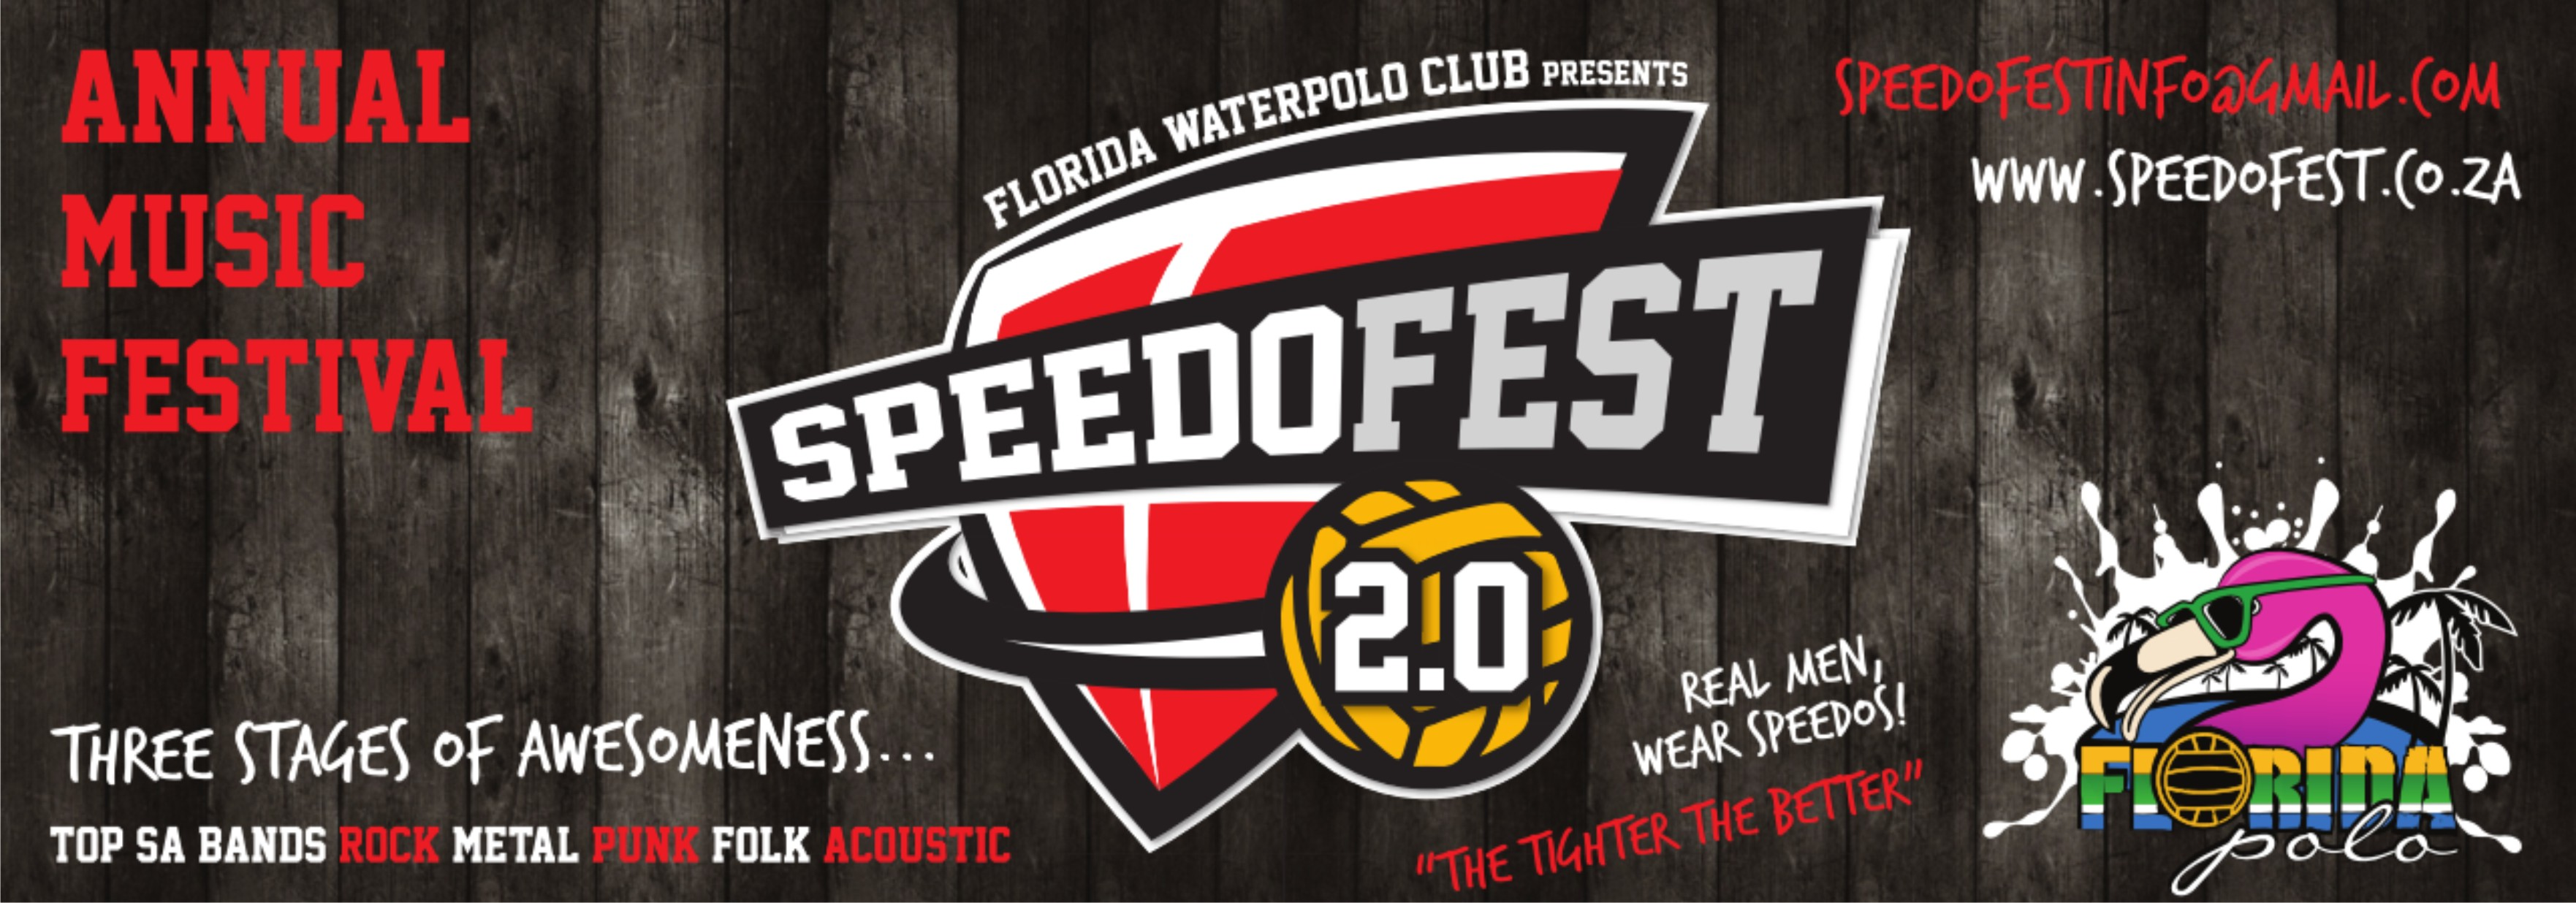 SpeedoFest 2.0 bring the best in South African music